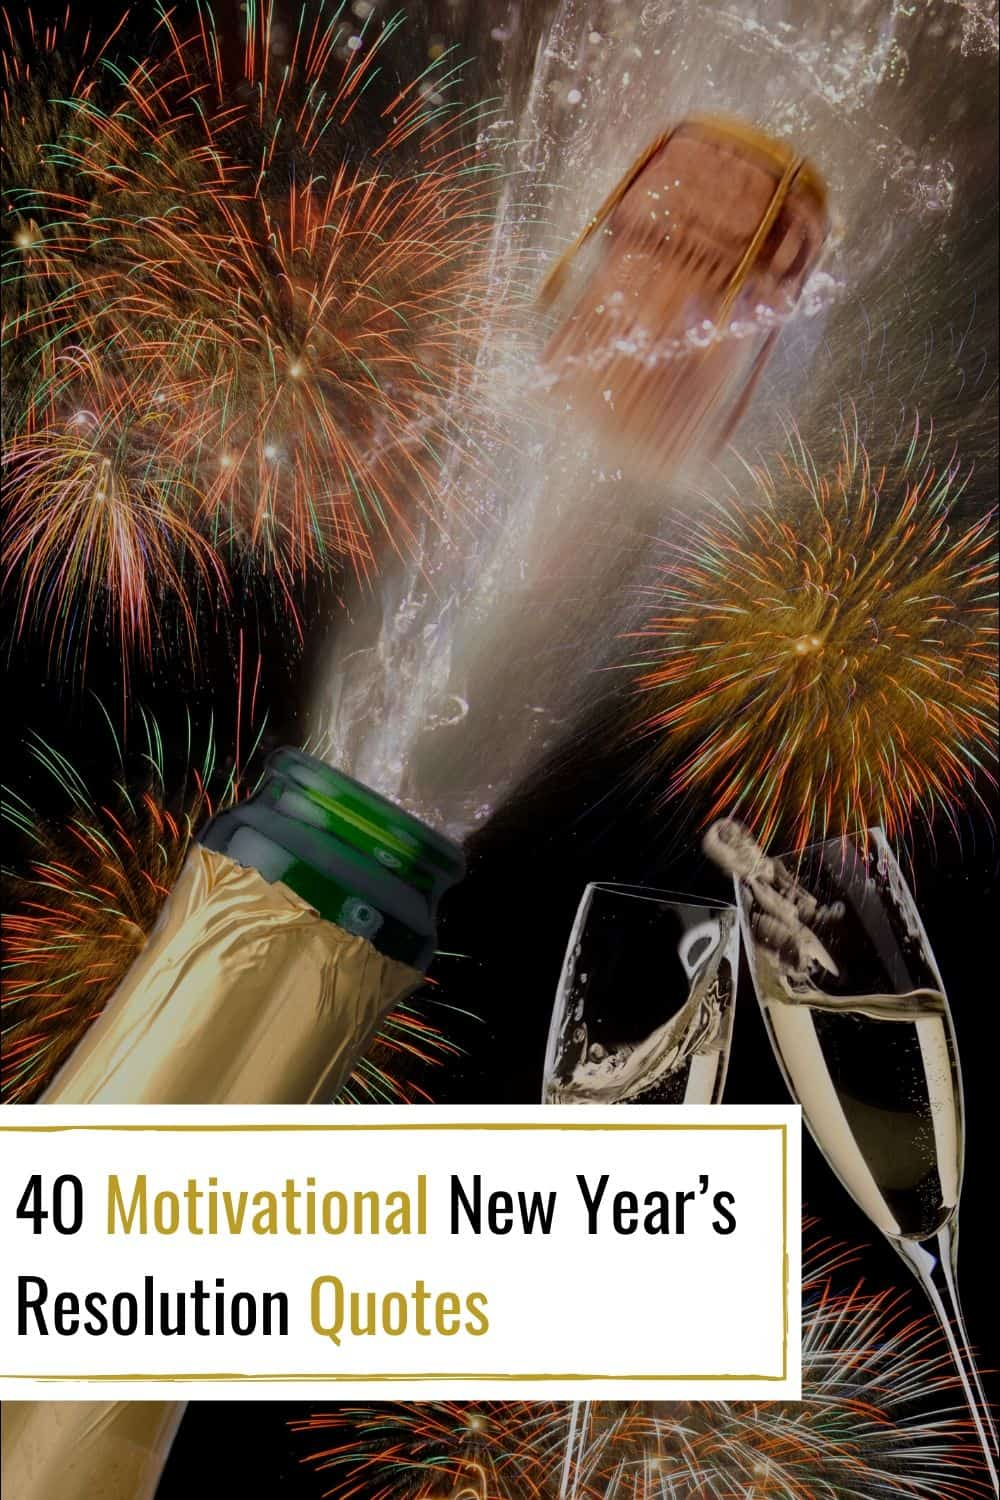 Motivational New Year's Resolution Quotes